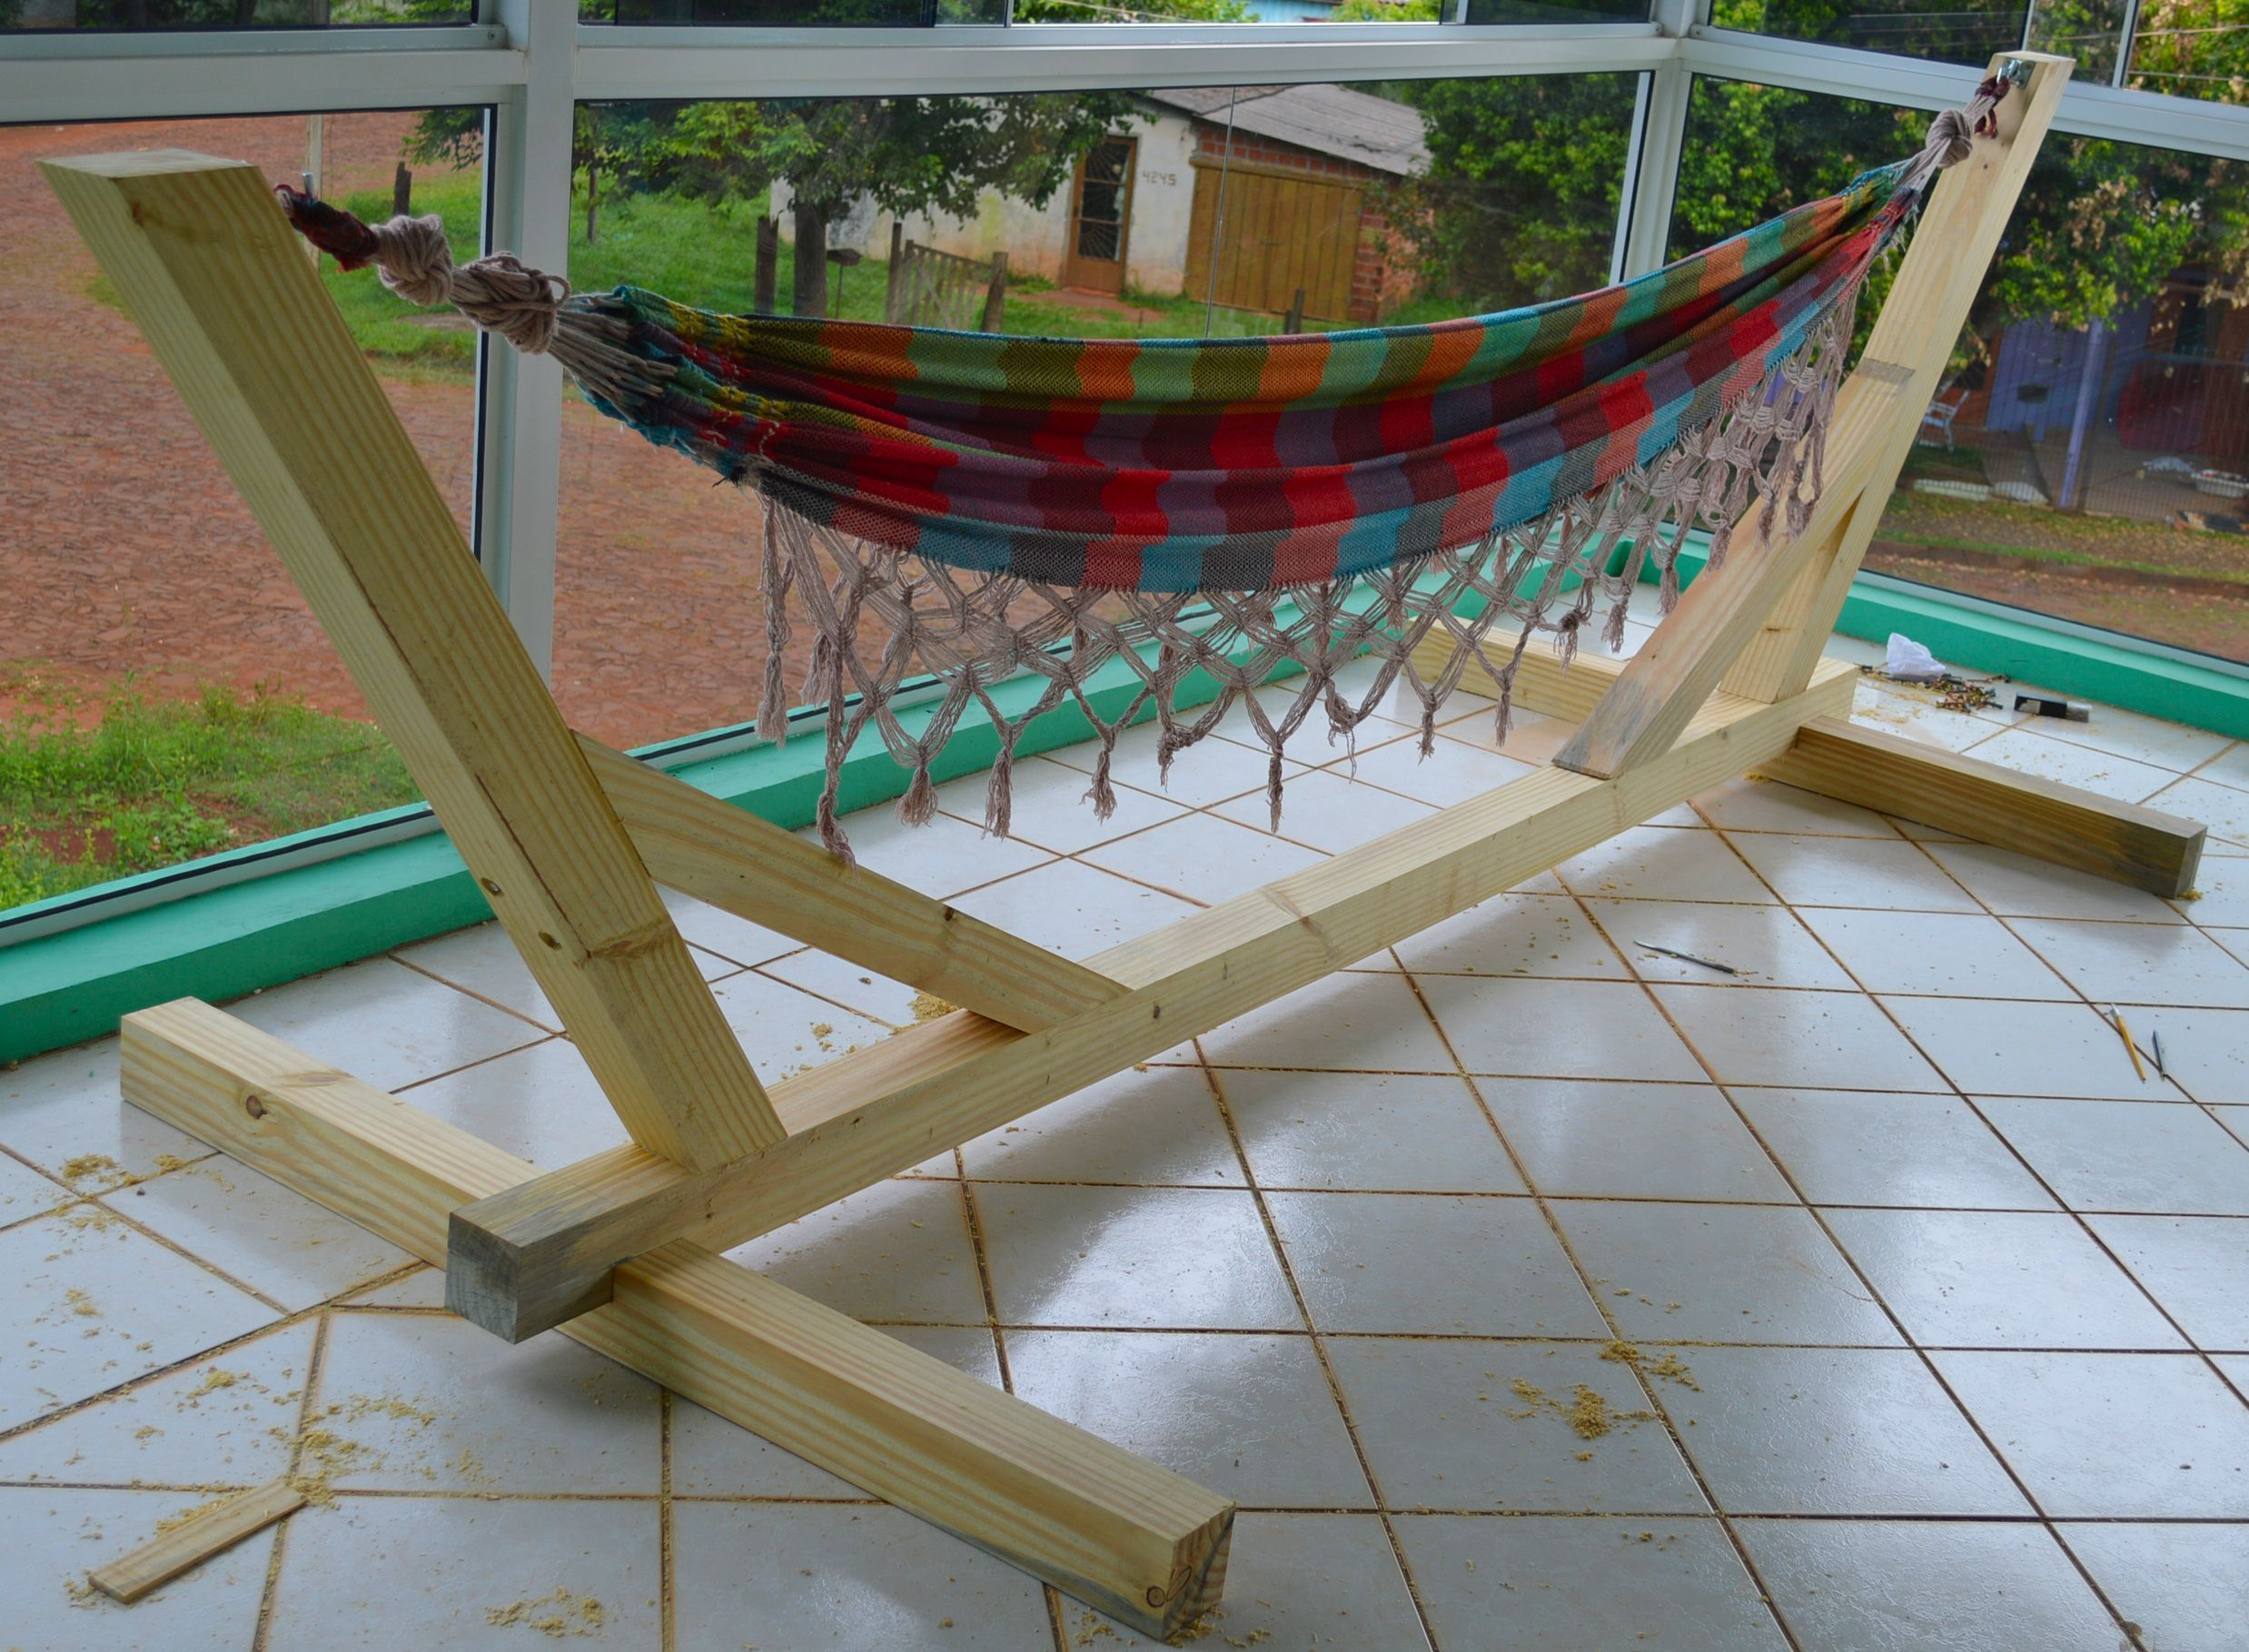 Chair Hammock Stand Diy Kidkraft White Table And Chairs Image Result For Pvc Pipe Pools